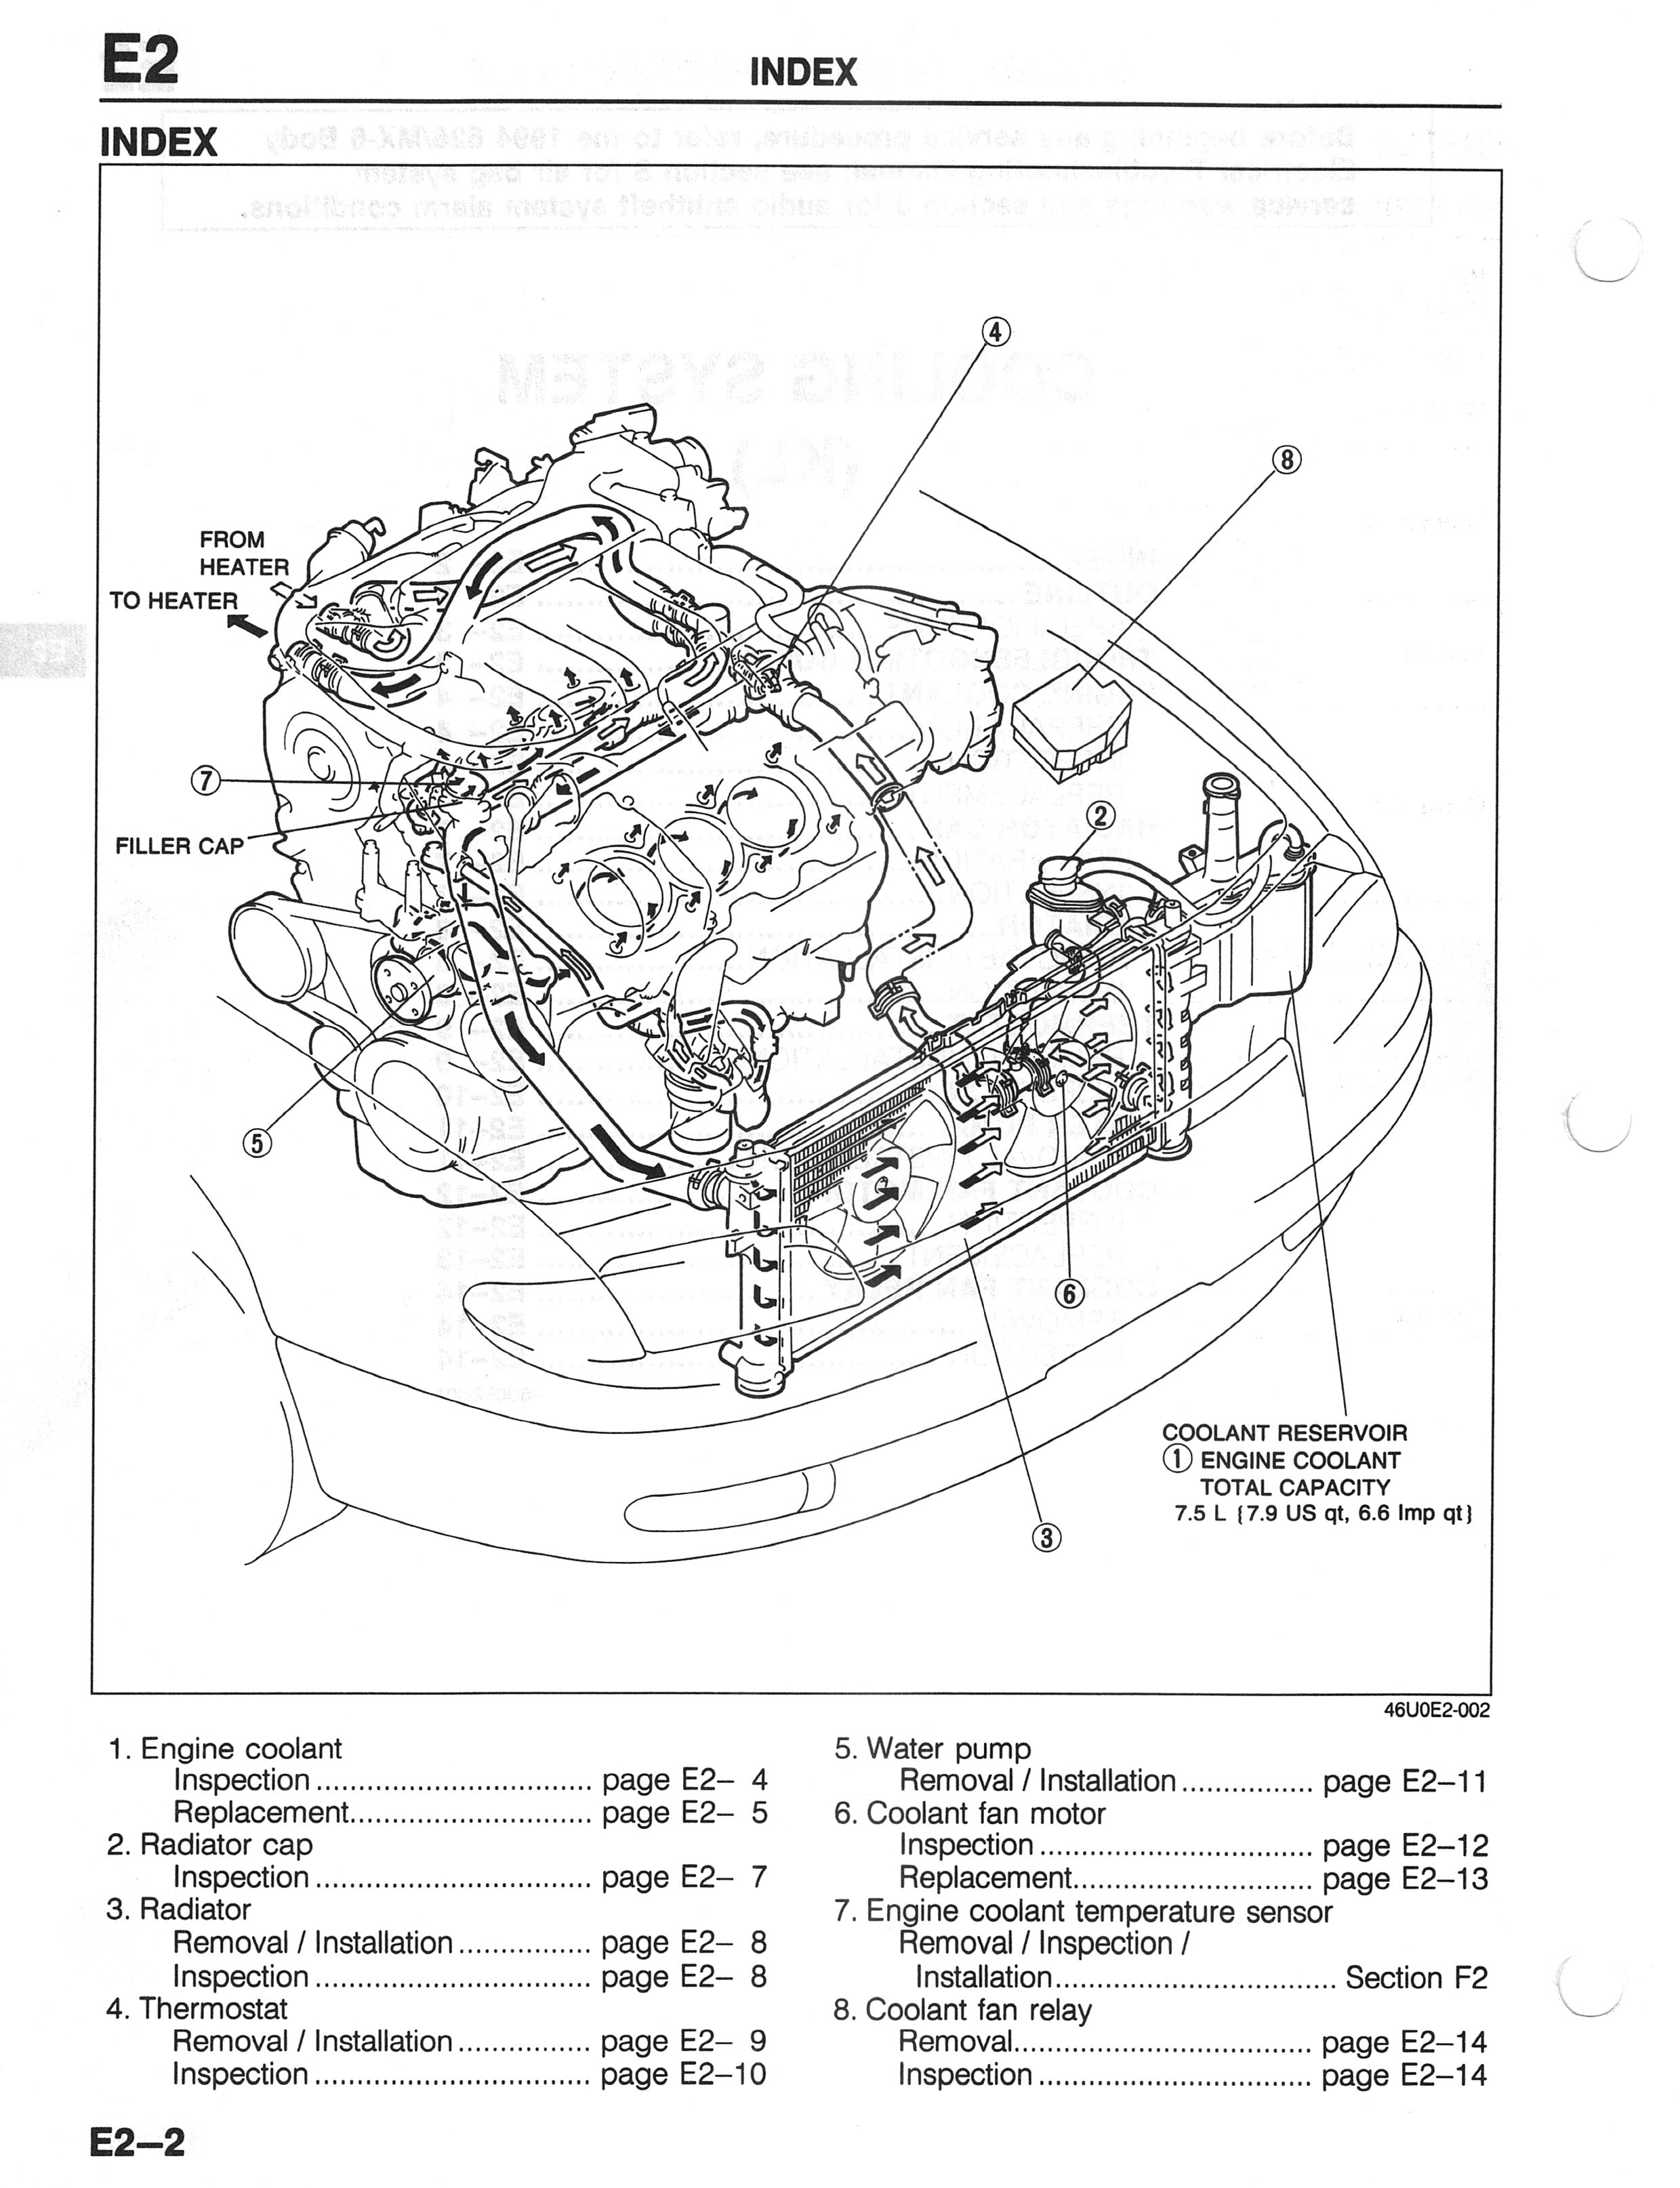 2005 mazda tribute engine diagram wiring library Mazda Tribute Radiator Diagram mazda tribute 2 5l engine parts schematic diagram car parts diagram rh 149 28 108 16